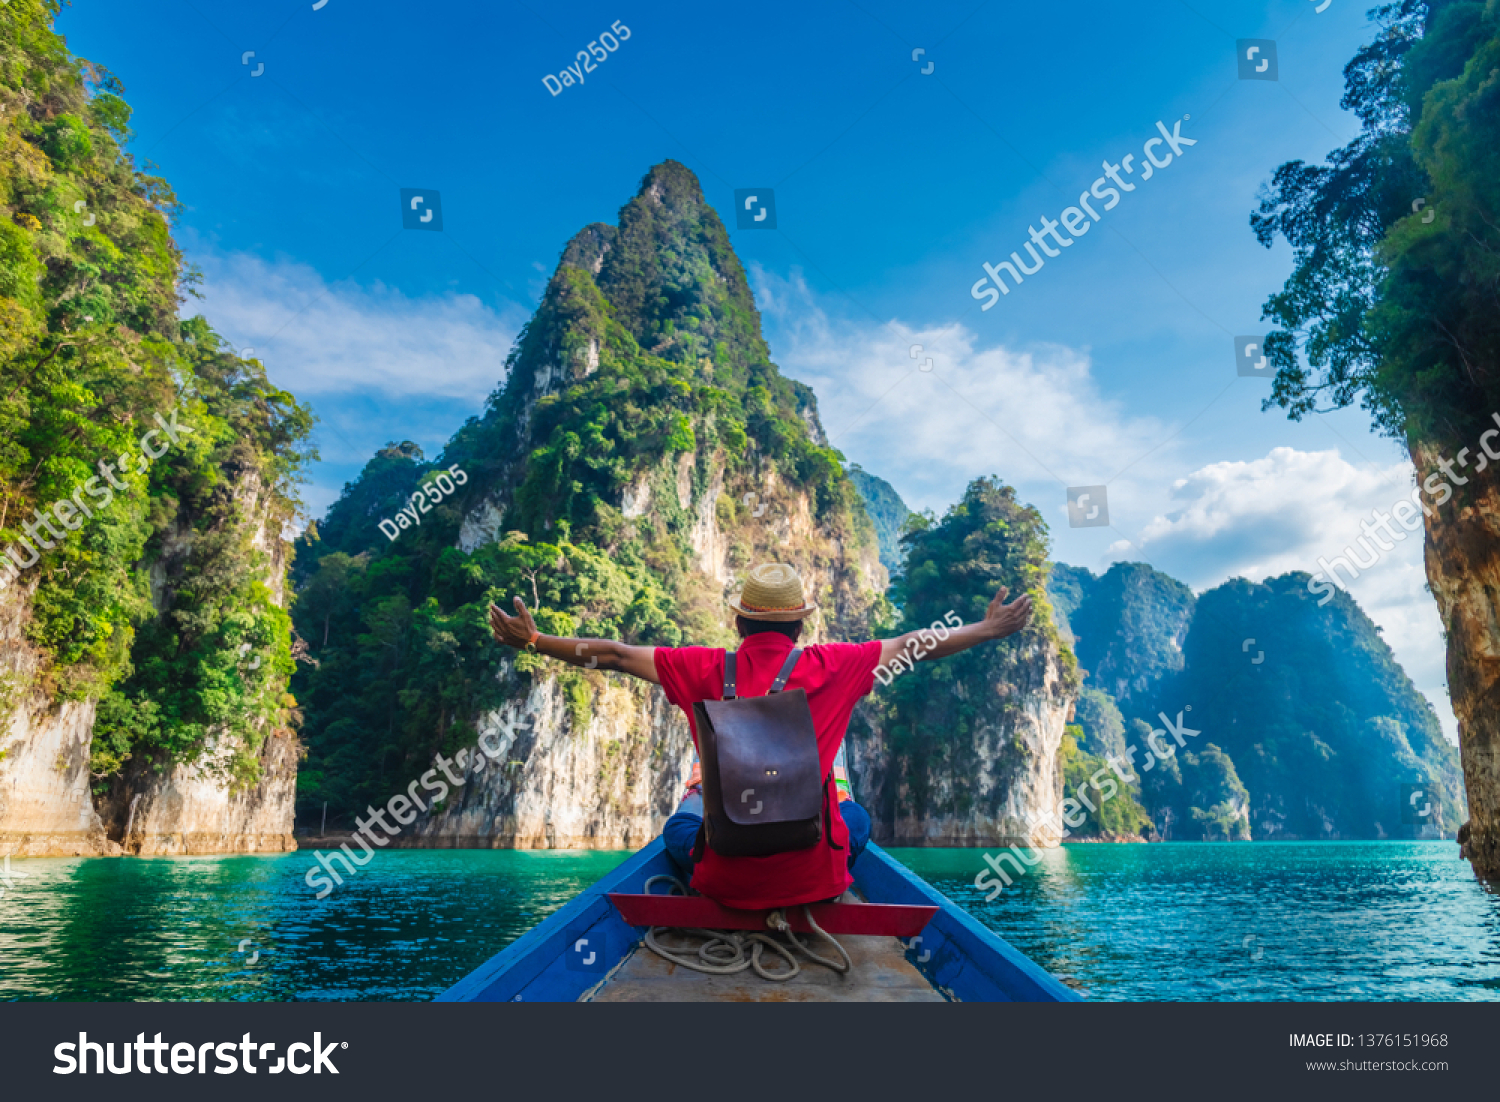 Man traveler on boat joy fun with nature rock mountain island scenic landscape Khao Sok National park, Famous travel adventure place Thailand, Tourism beautiful destinations Asia holiday vacation trip #1376151968